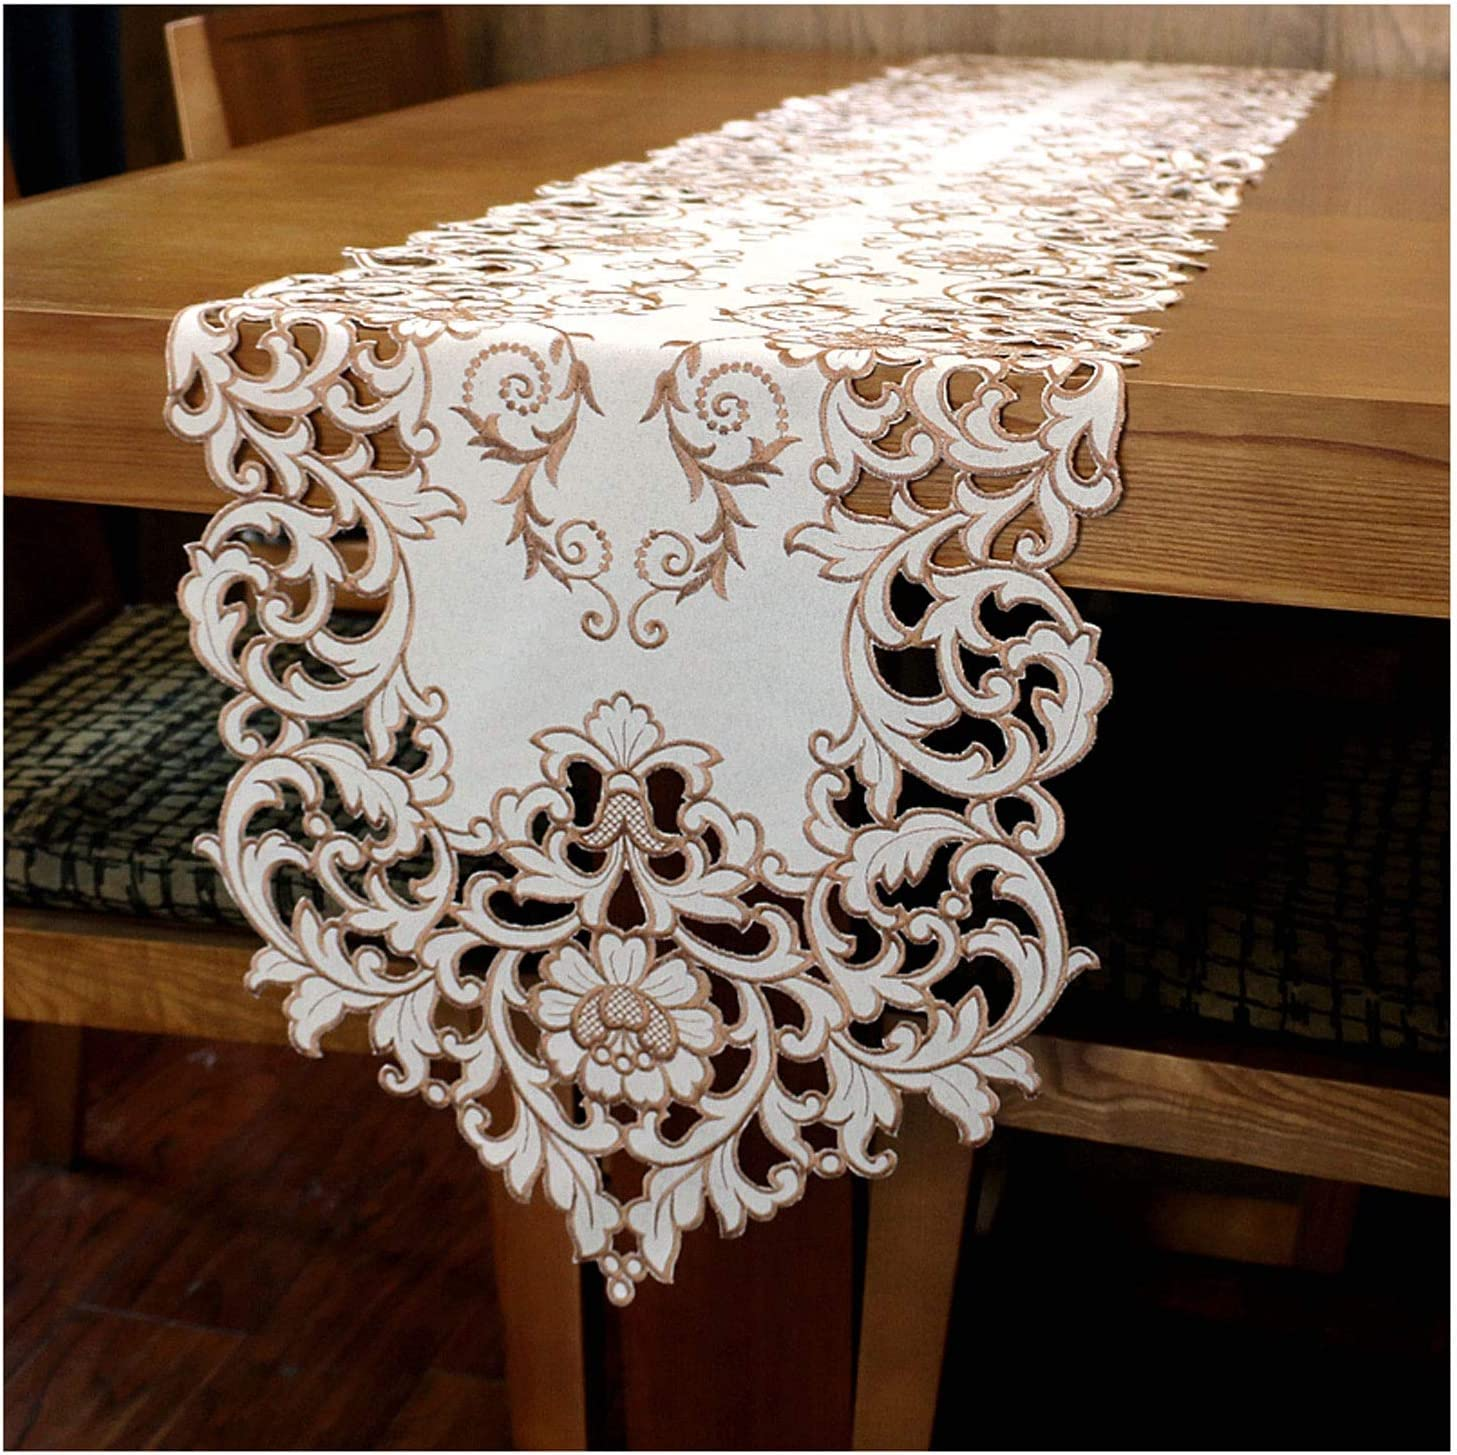 Electric oven Daily bargain sale Embroidered Hollow Max 50% OFF Decoration Table Runner Ideal